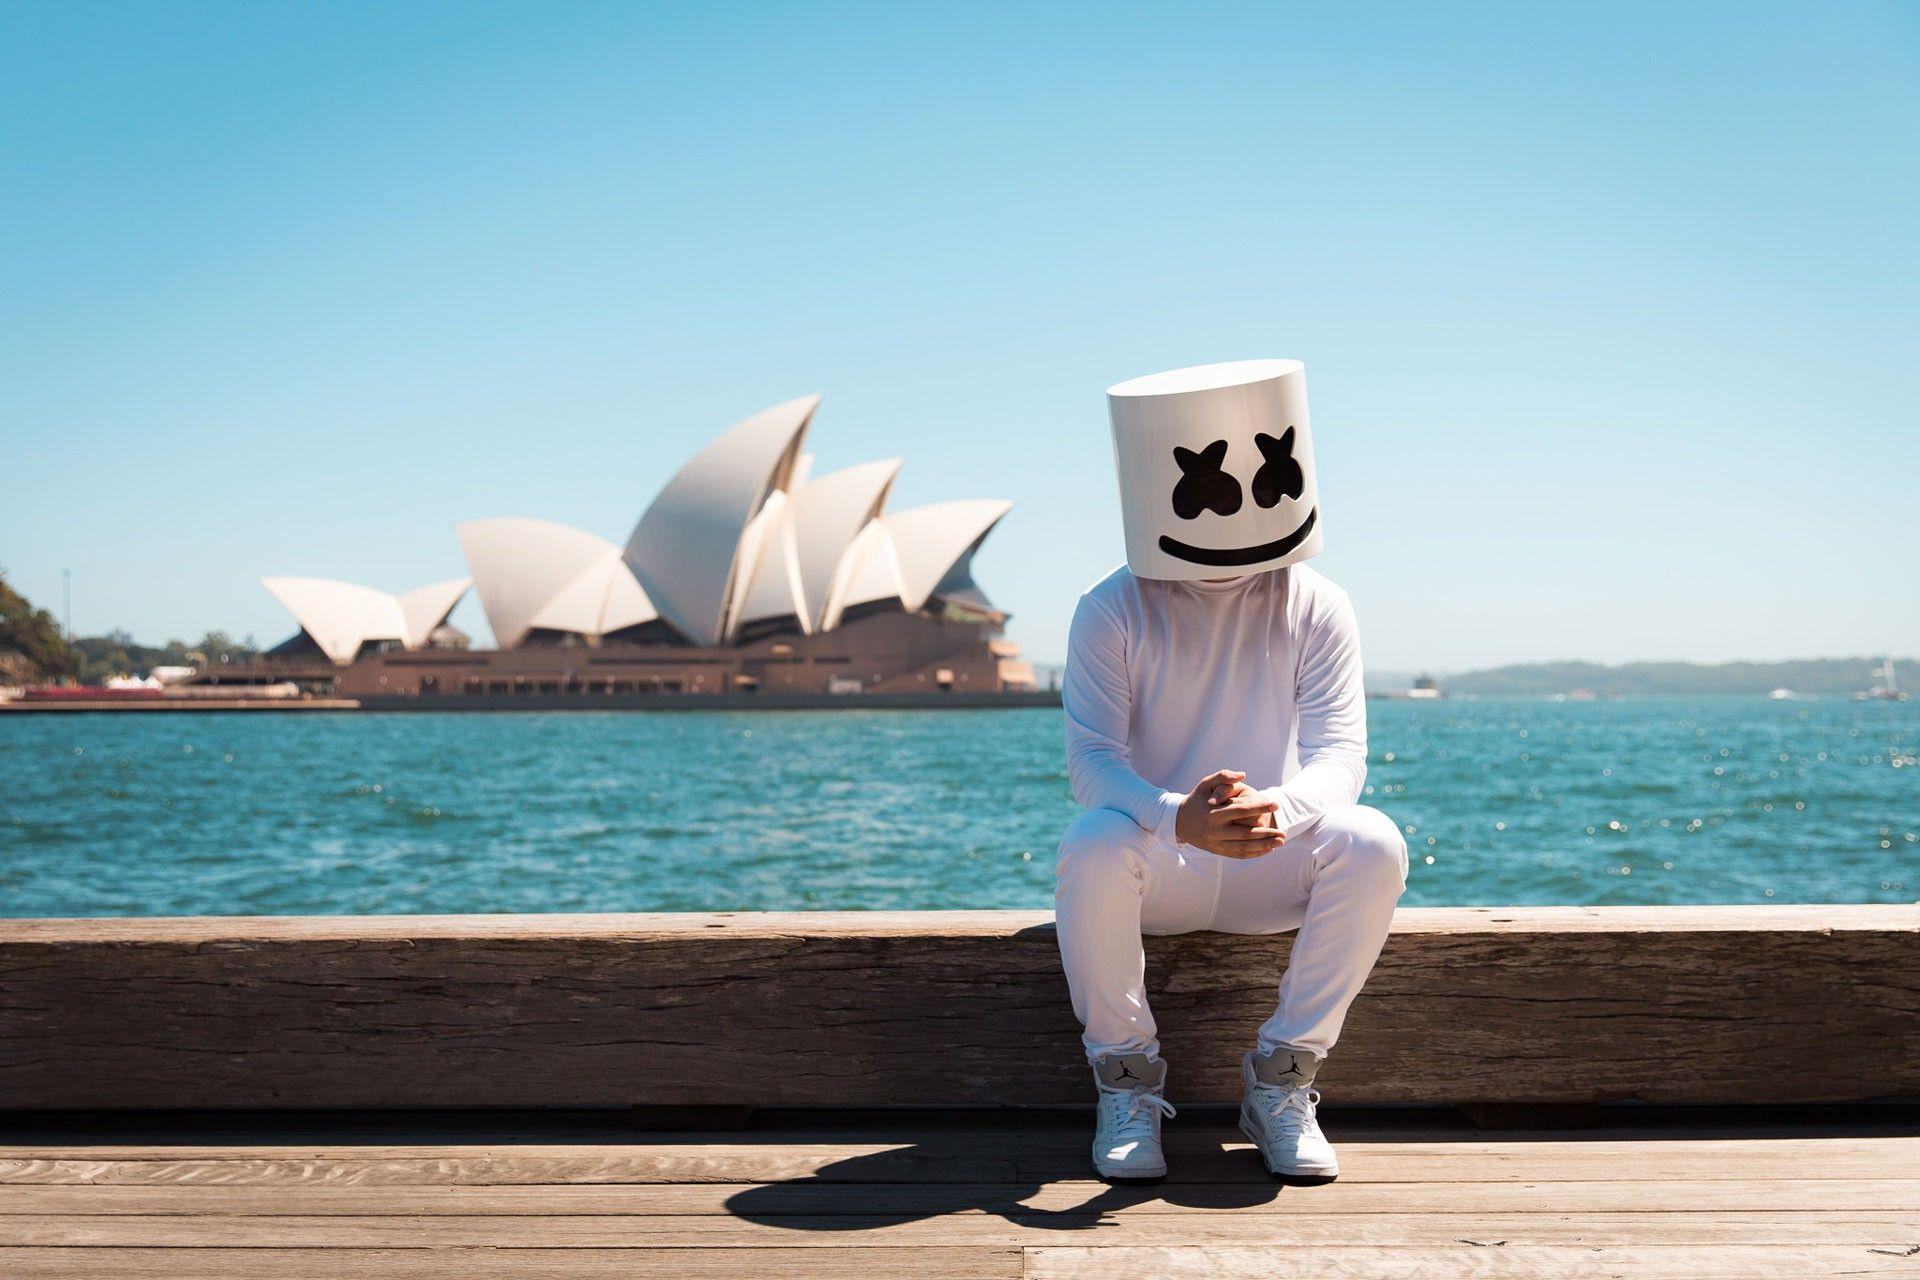 marshmello dj wallpaper hd 62752